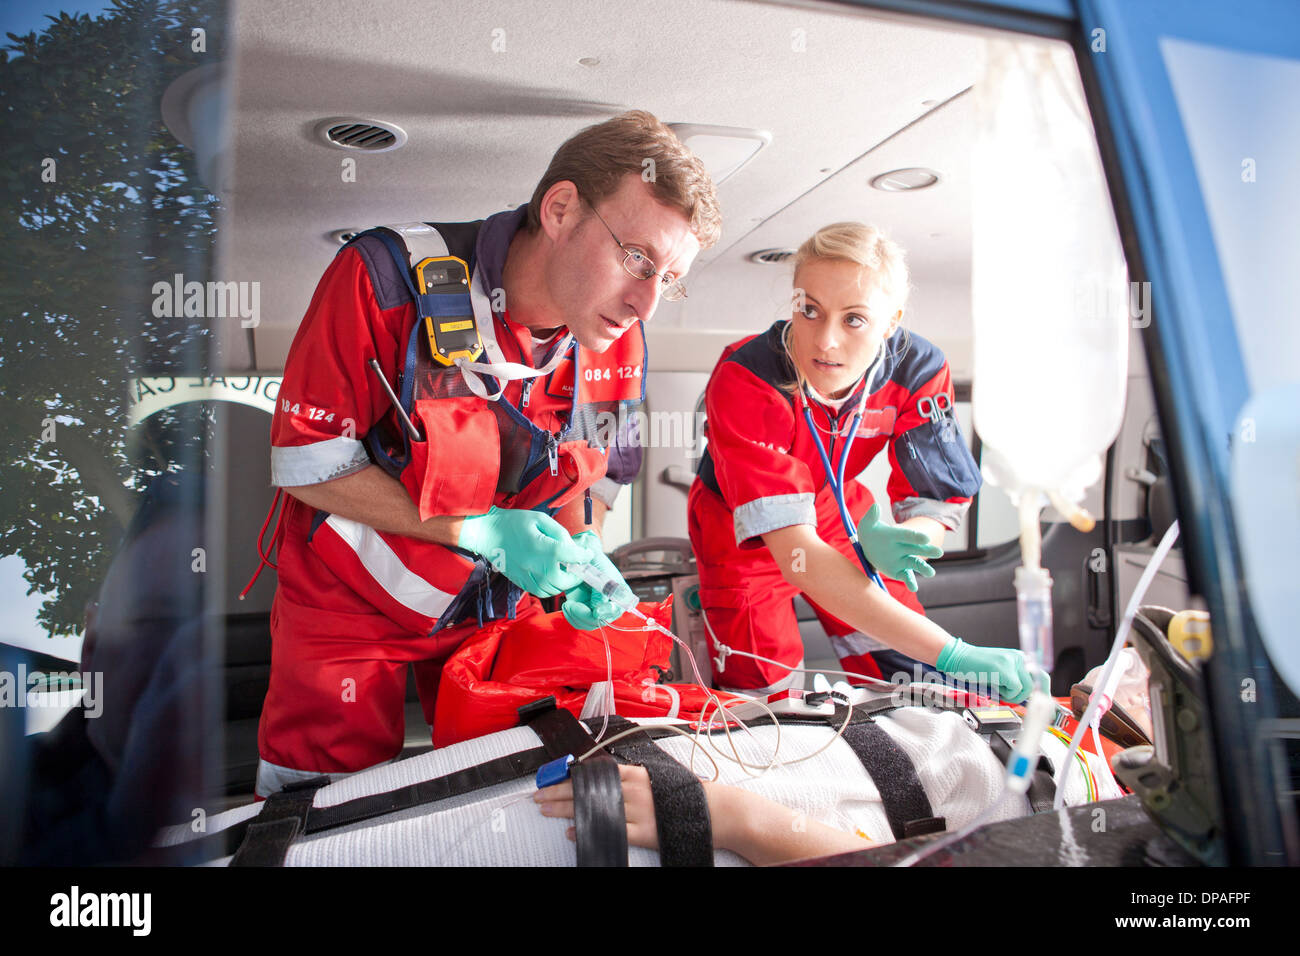 Paramedics working on patient in ambulance Stock Photo